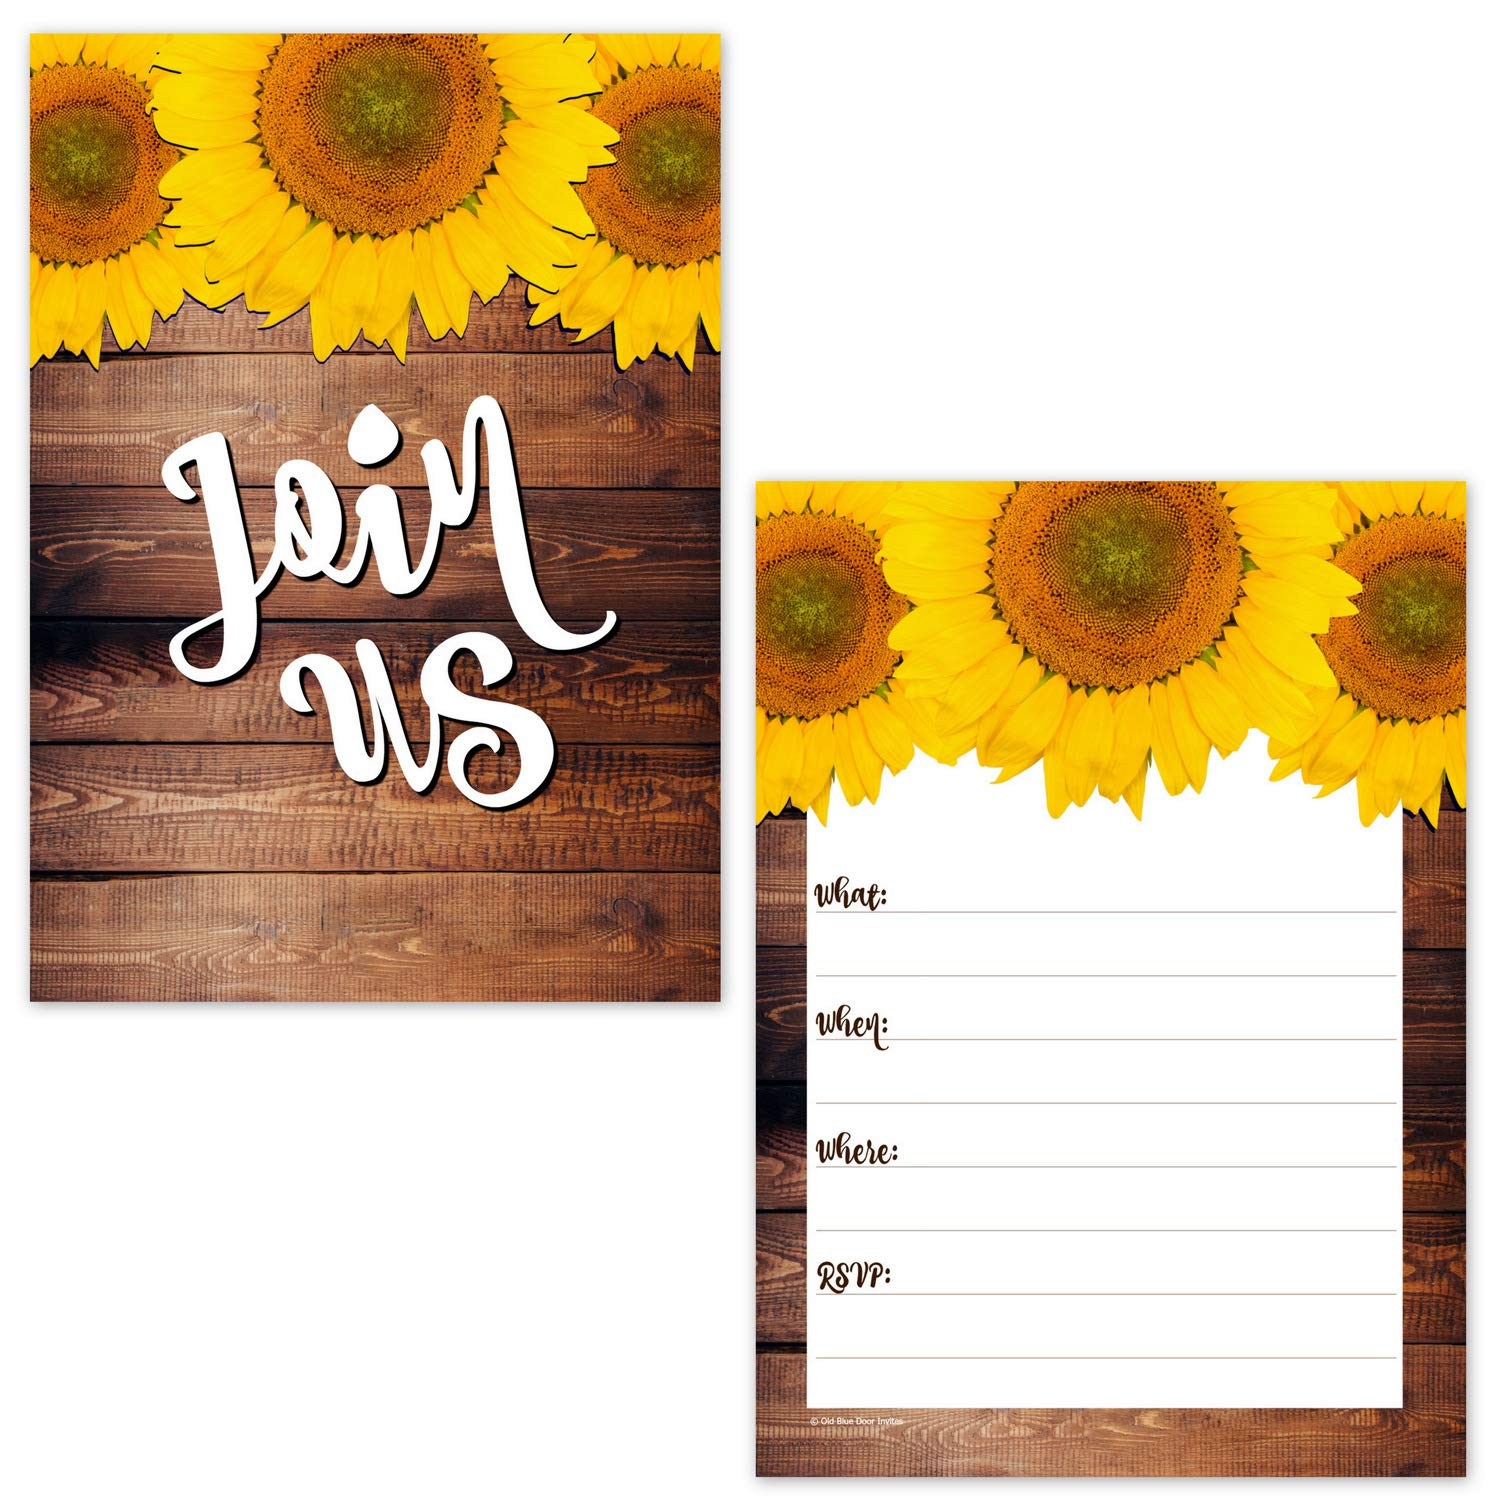 Rustic Sunflower On Barn Wood Design Fill In The Blank Party Invitations 20 Count With